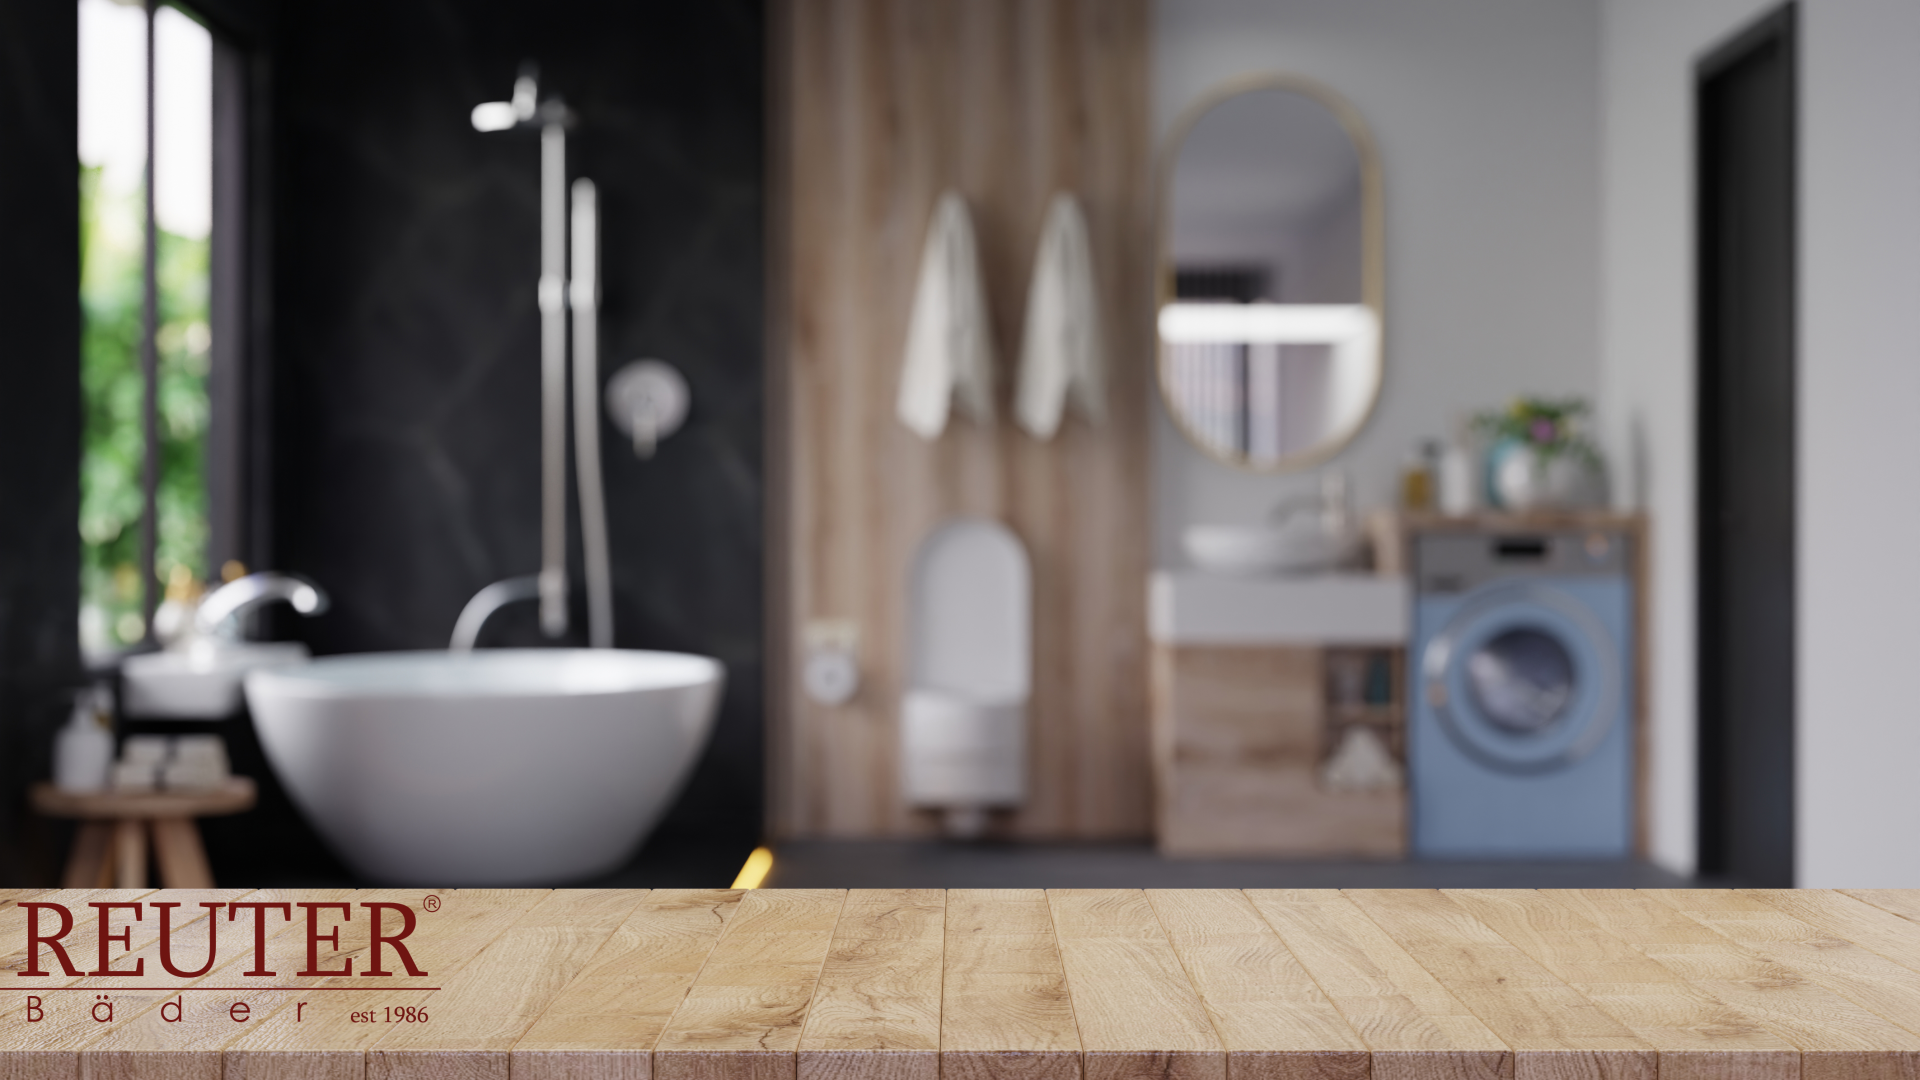 empty-tabletop-product-display-with-blurred-bathroom